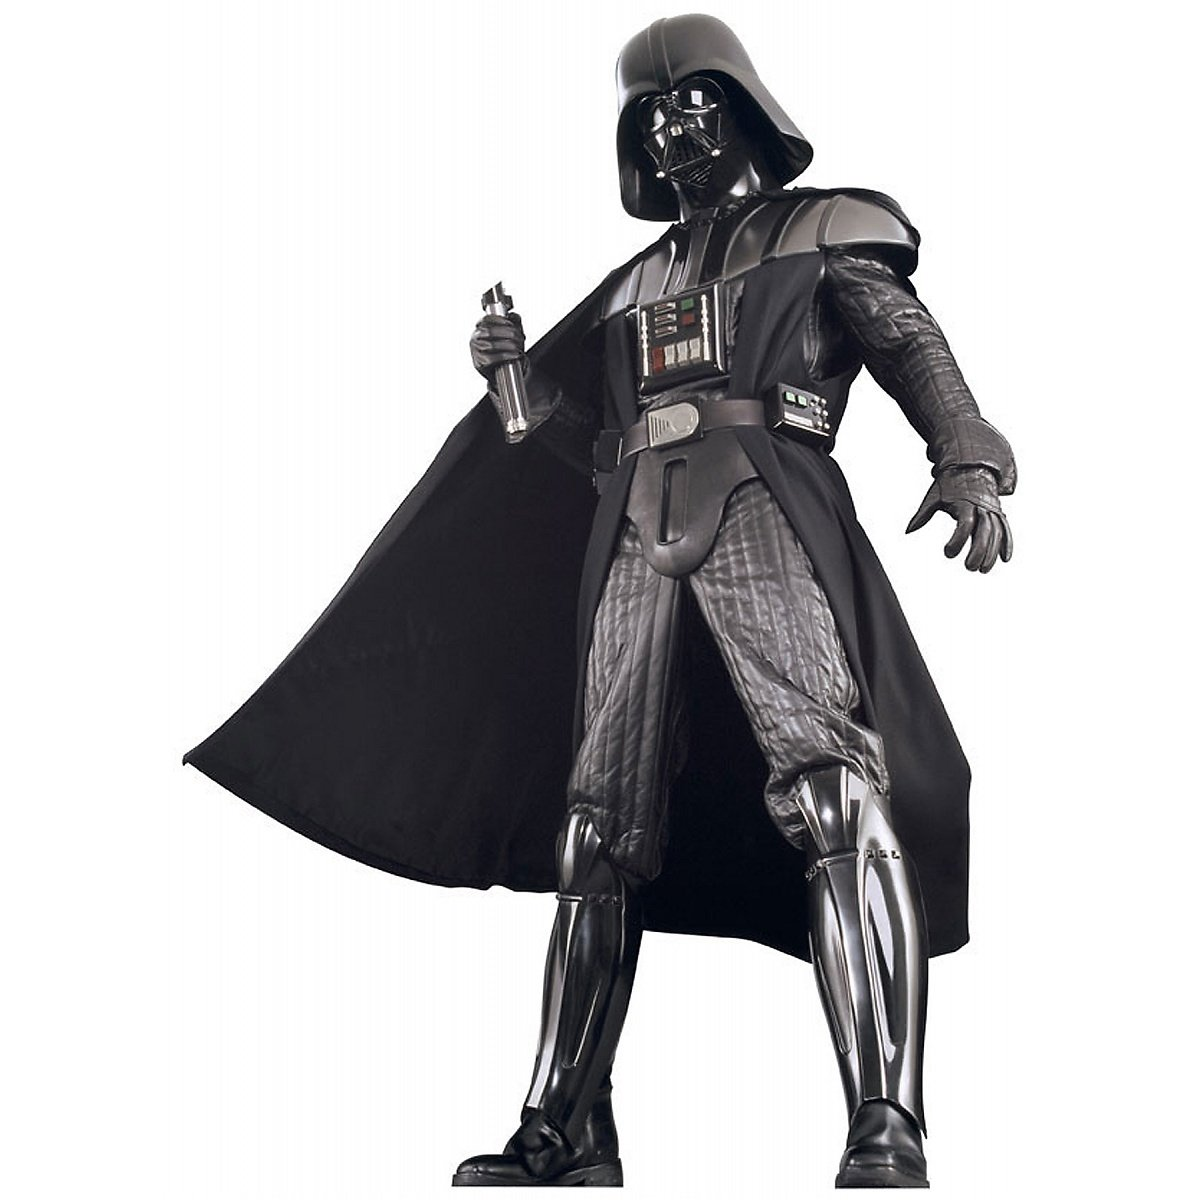 Rubies Costume Co. Collector Supreme Edition, Star Wars, Darth Vader Costume, Black, XL